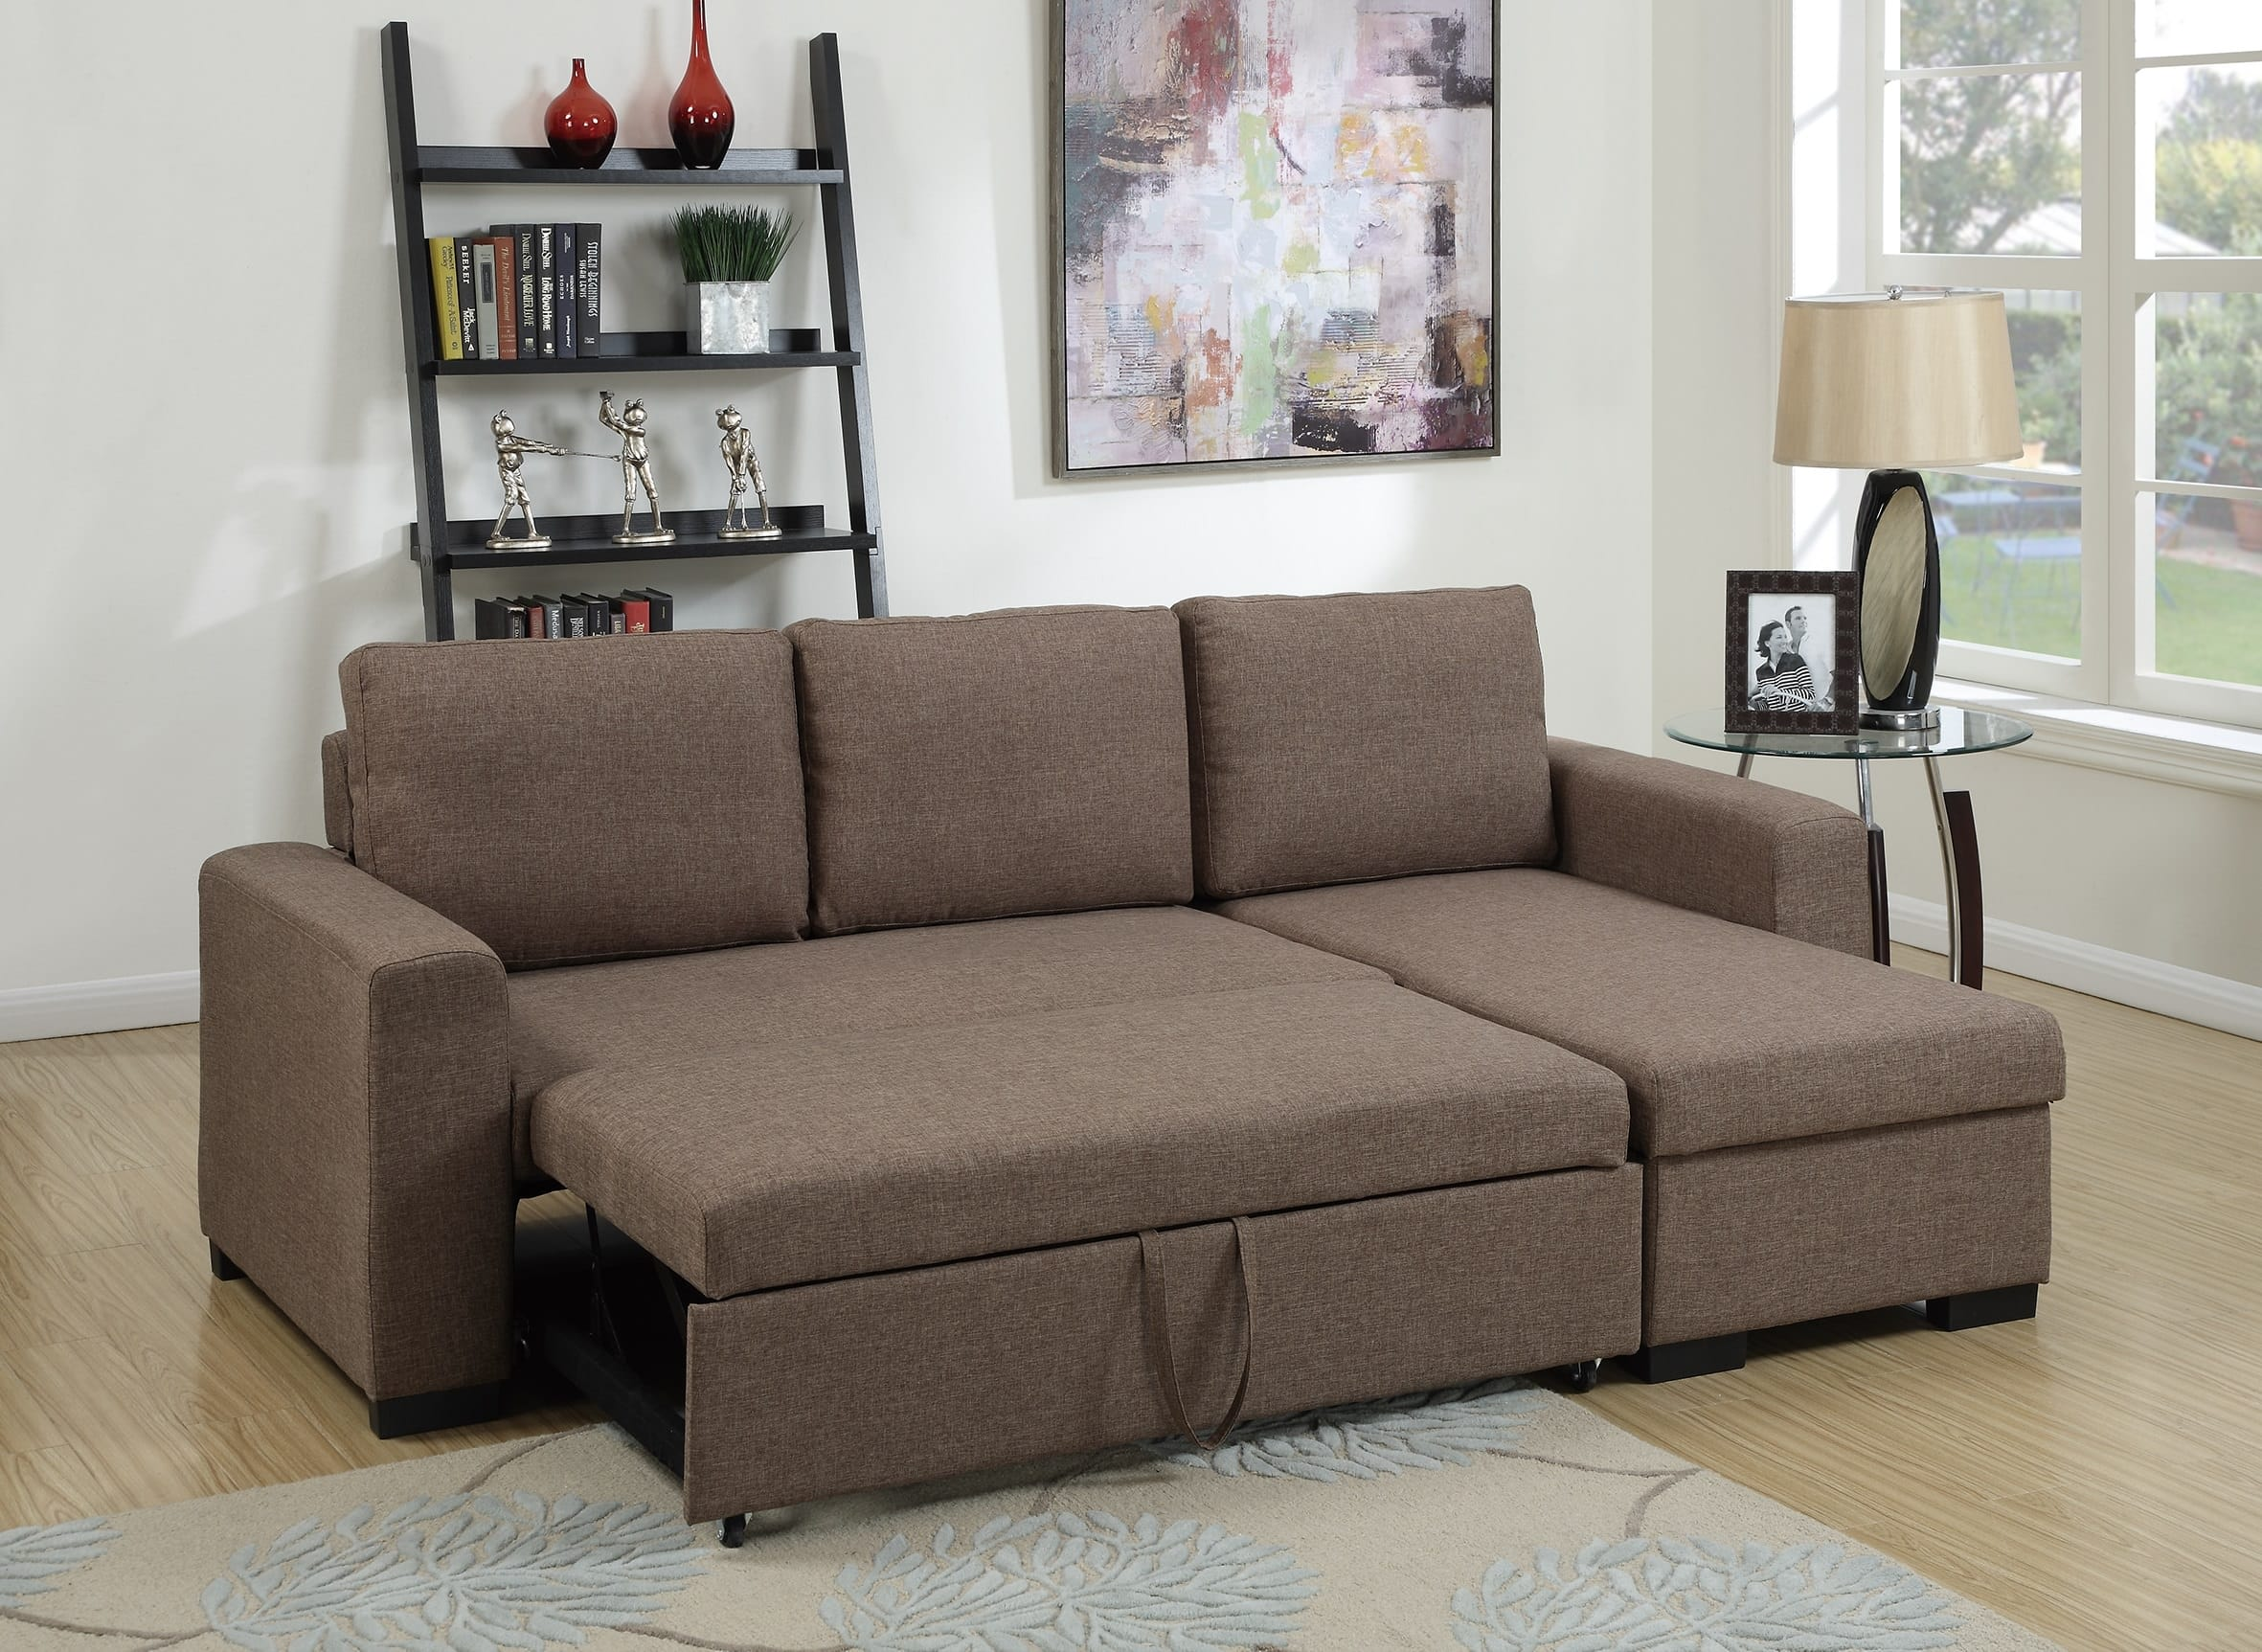 F6932 Light Coffee Convertible Sectional Sofa by Poundex